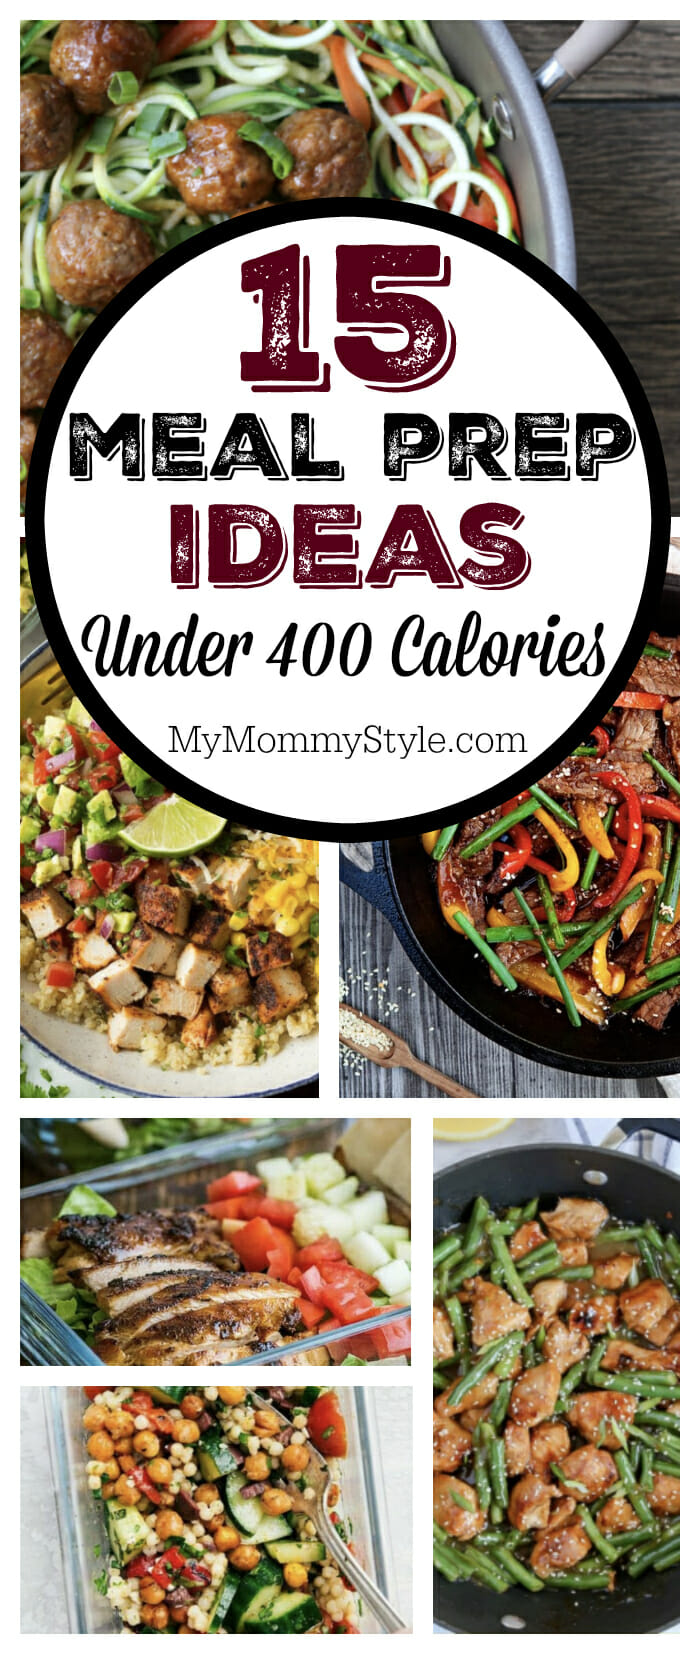 All under 400 calories, these low calorie meal prep ideas bring multiple combinations of flavor sure to give you the variety you've been looking for. Meal prepping is a superb way to eat healthy and save time. via @mymommystyle